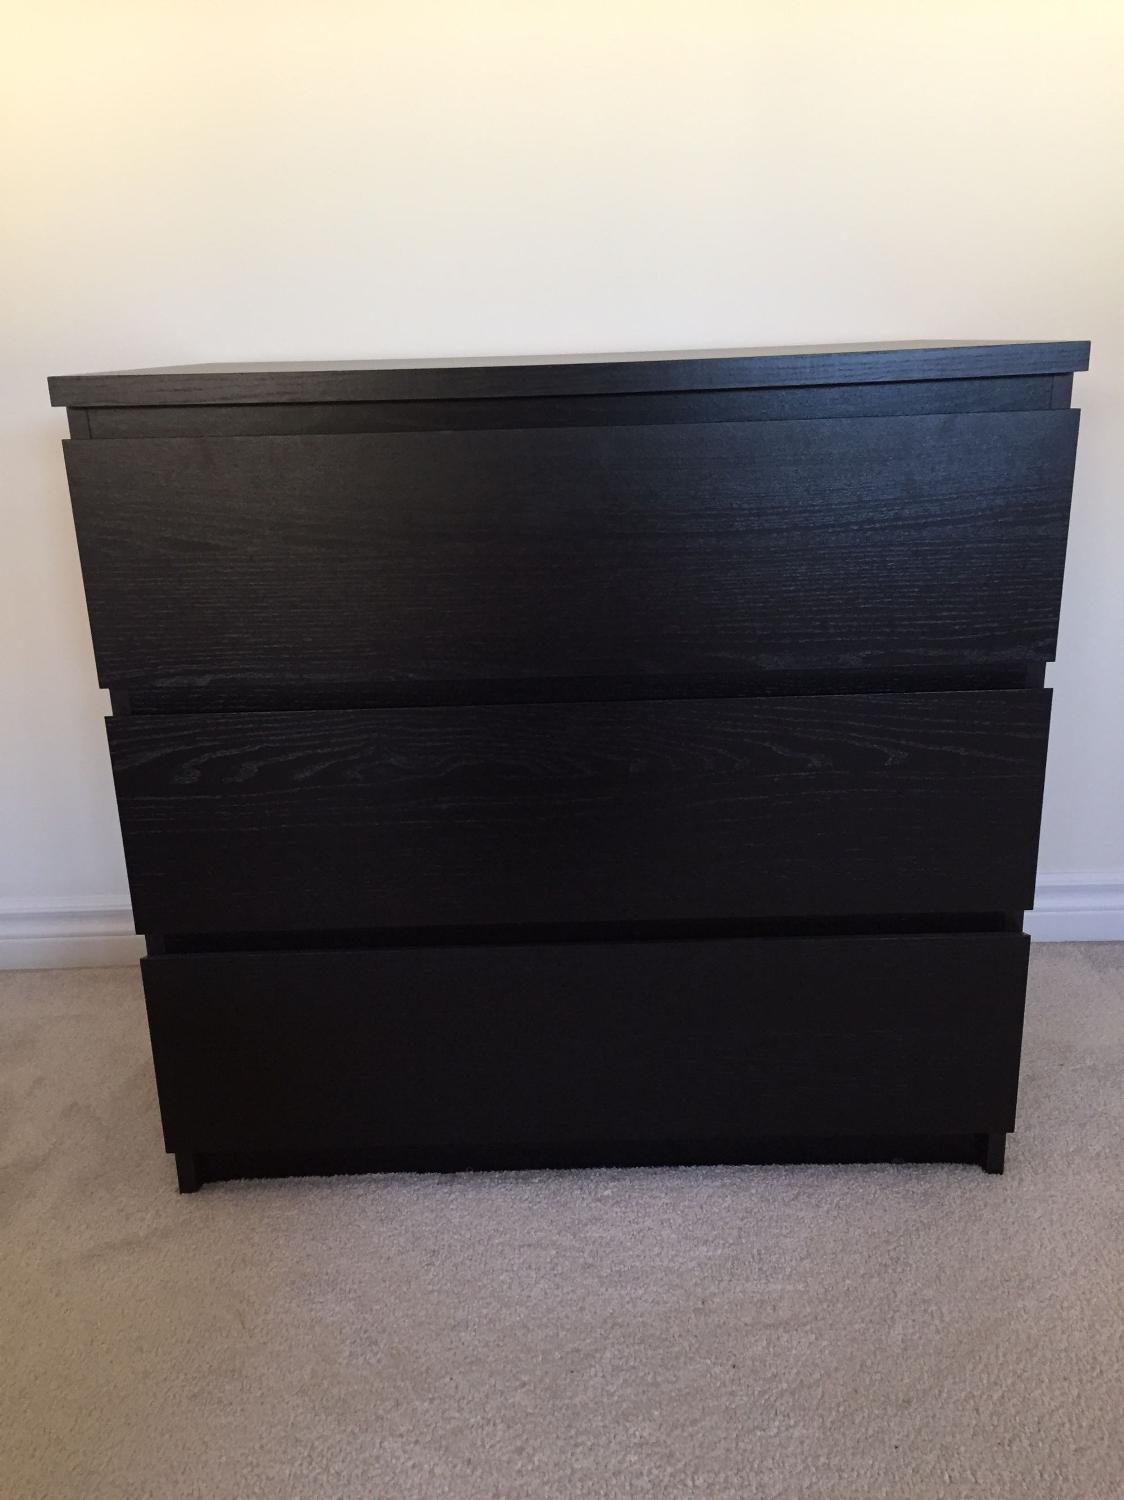 #856F46 Find More Ikea Malm 3 Drawer Dresser For Sale At Up To 90% Off  with 1124x1500 px of Recommended Three Drawer Dresser Ikea 15001124 save image @ avoidforclosure.info